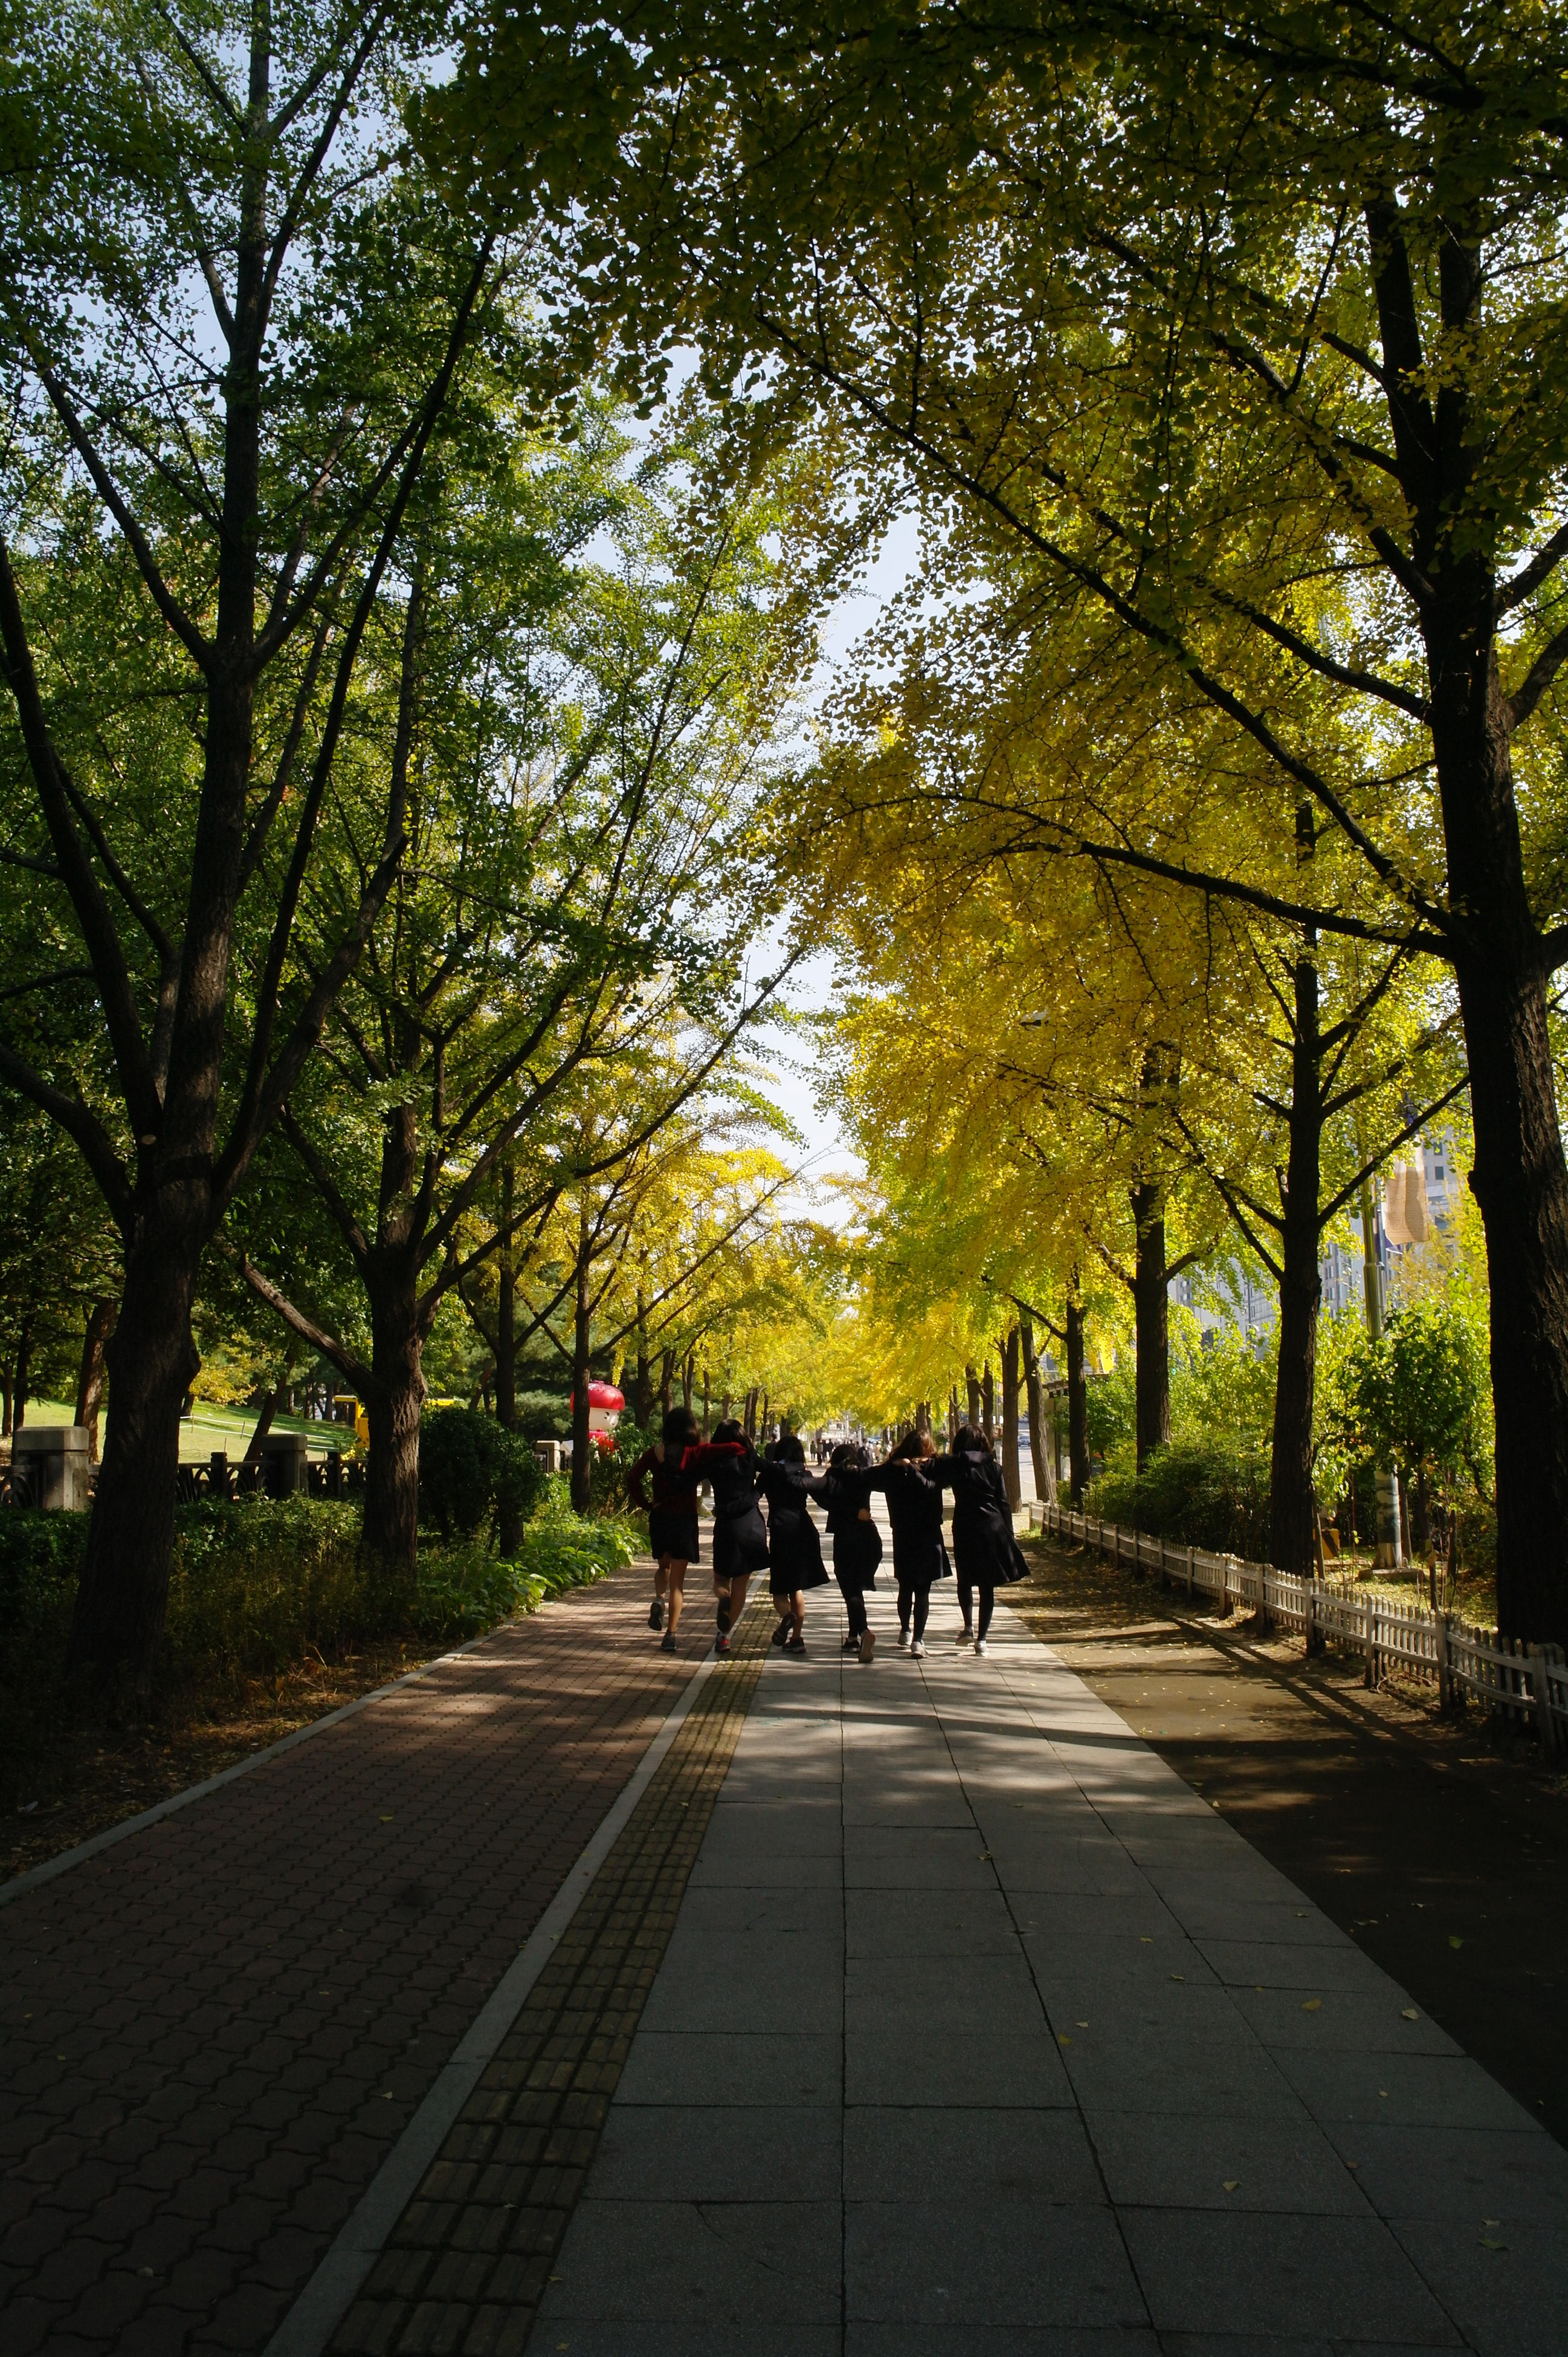 tree, lifestyles, men, walking, person, the way forward, leisure activity, rear view, footpath, togetherness, full length, treelined, park - man made space, growth, day, group of people, large group of people, street